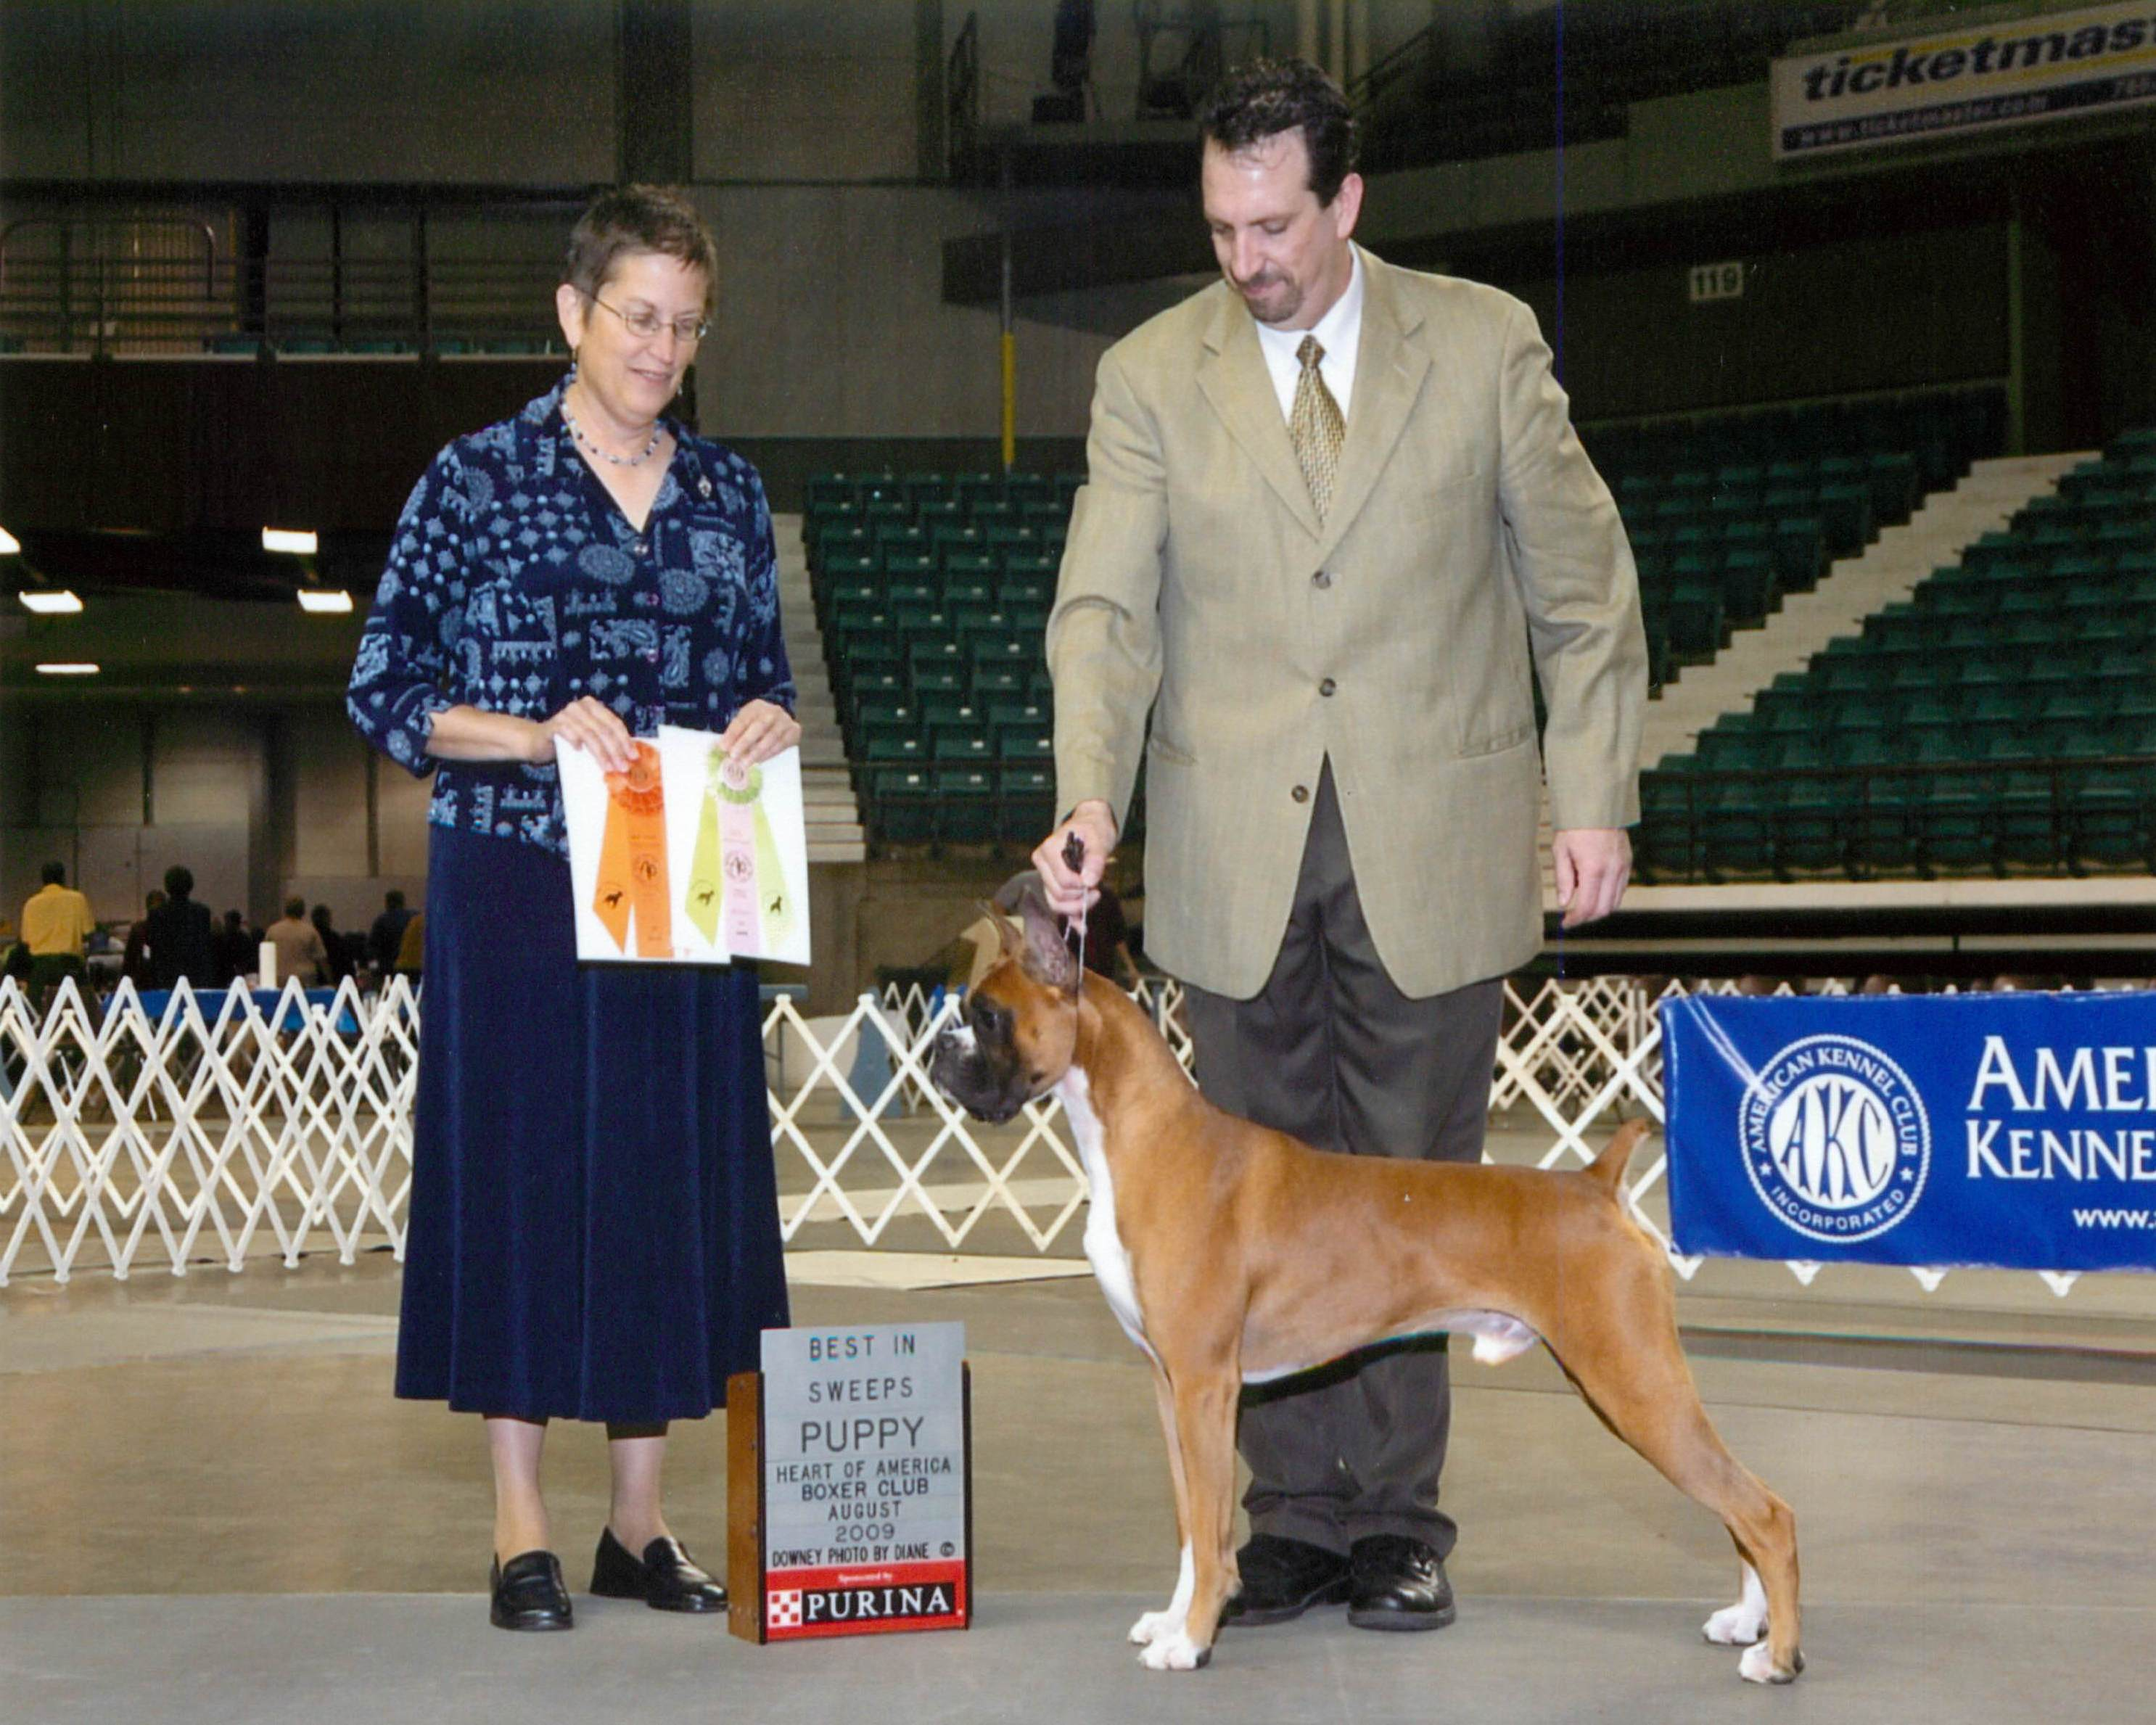 Grand Sweepstakes, Best Puppy @ 2009 Specialty Show #1